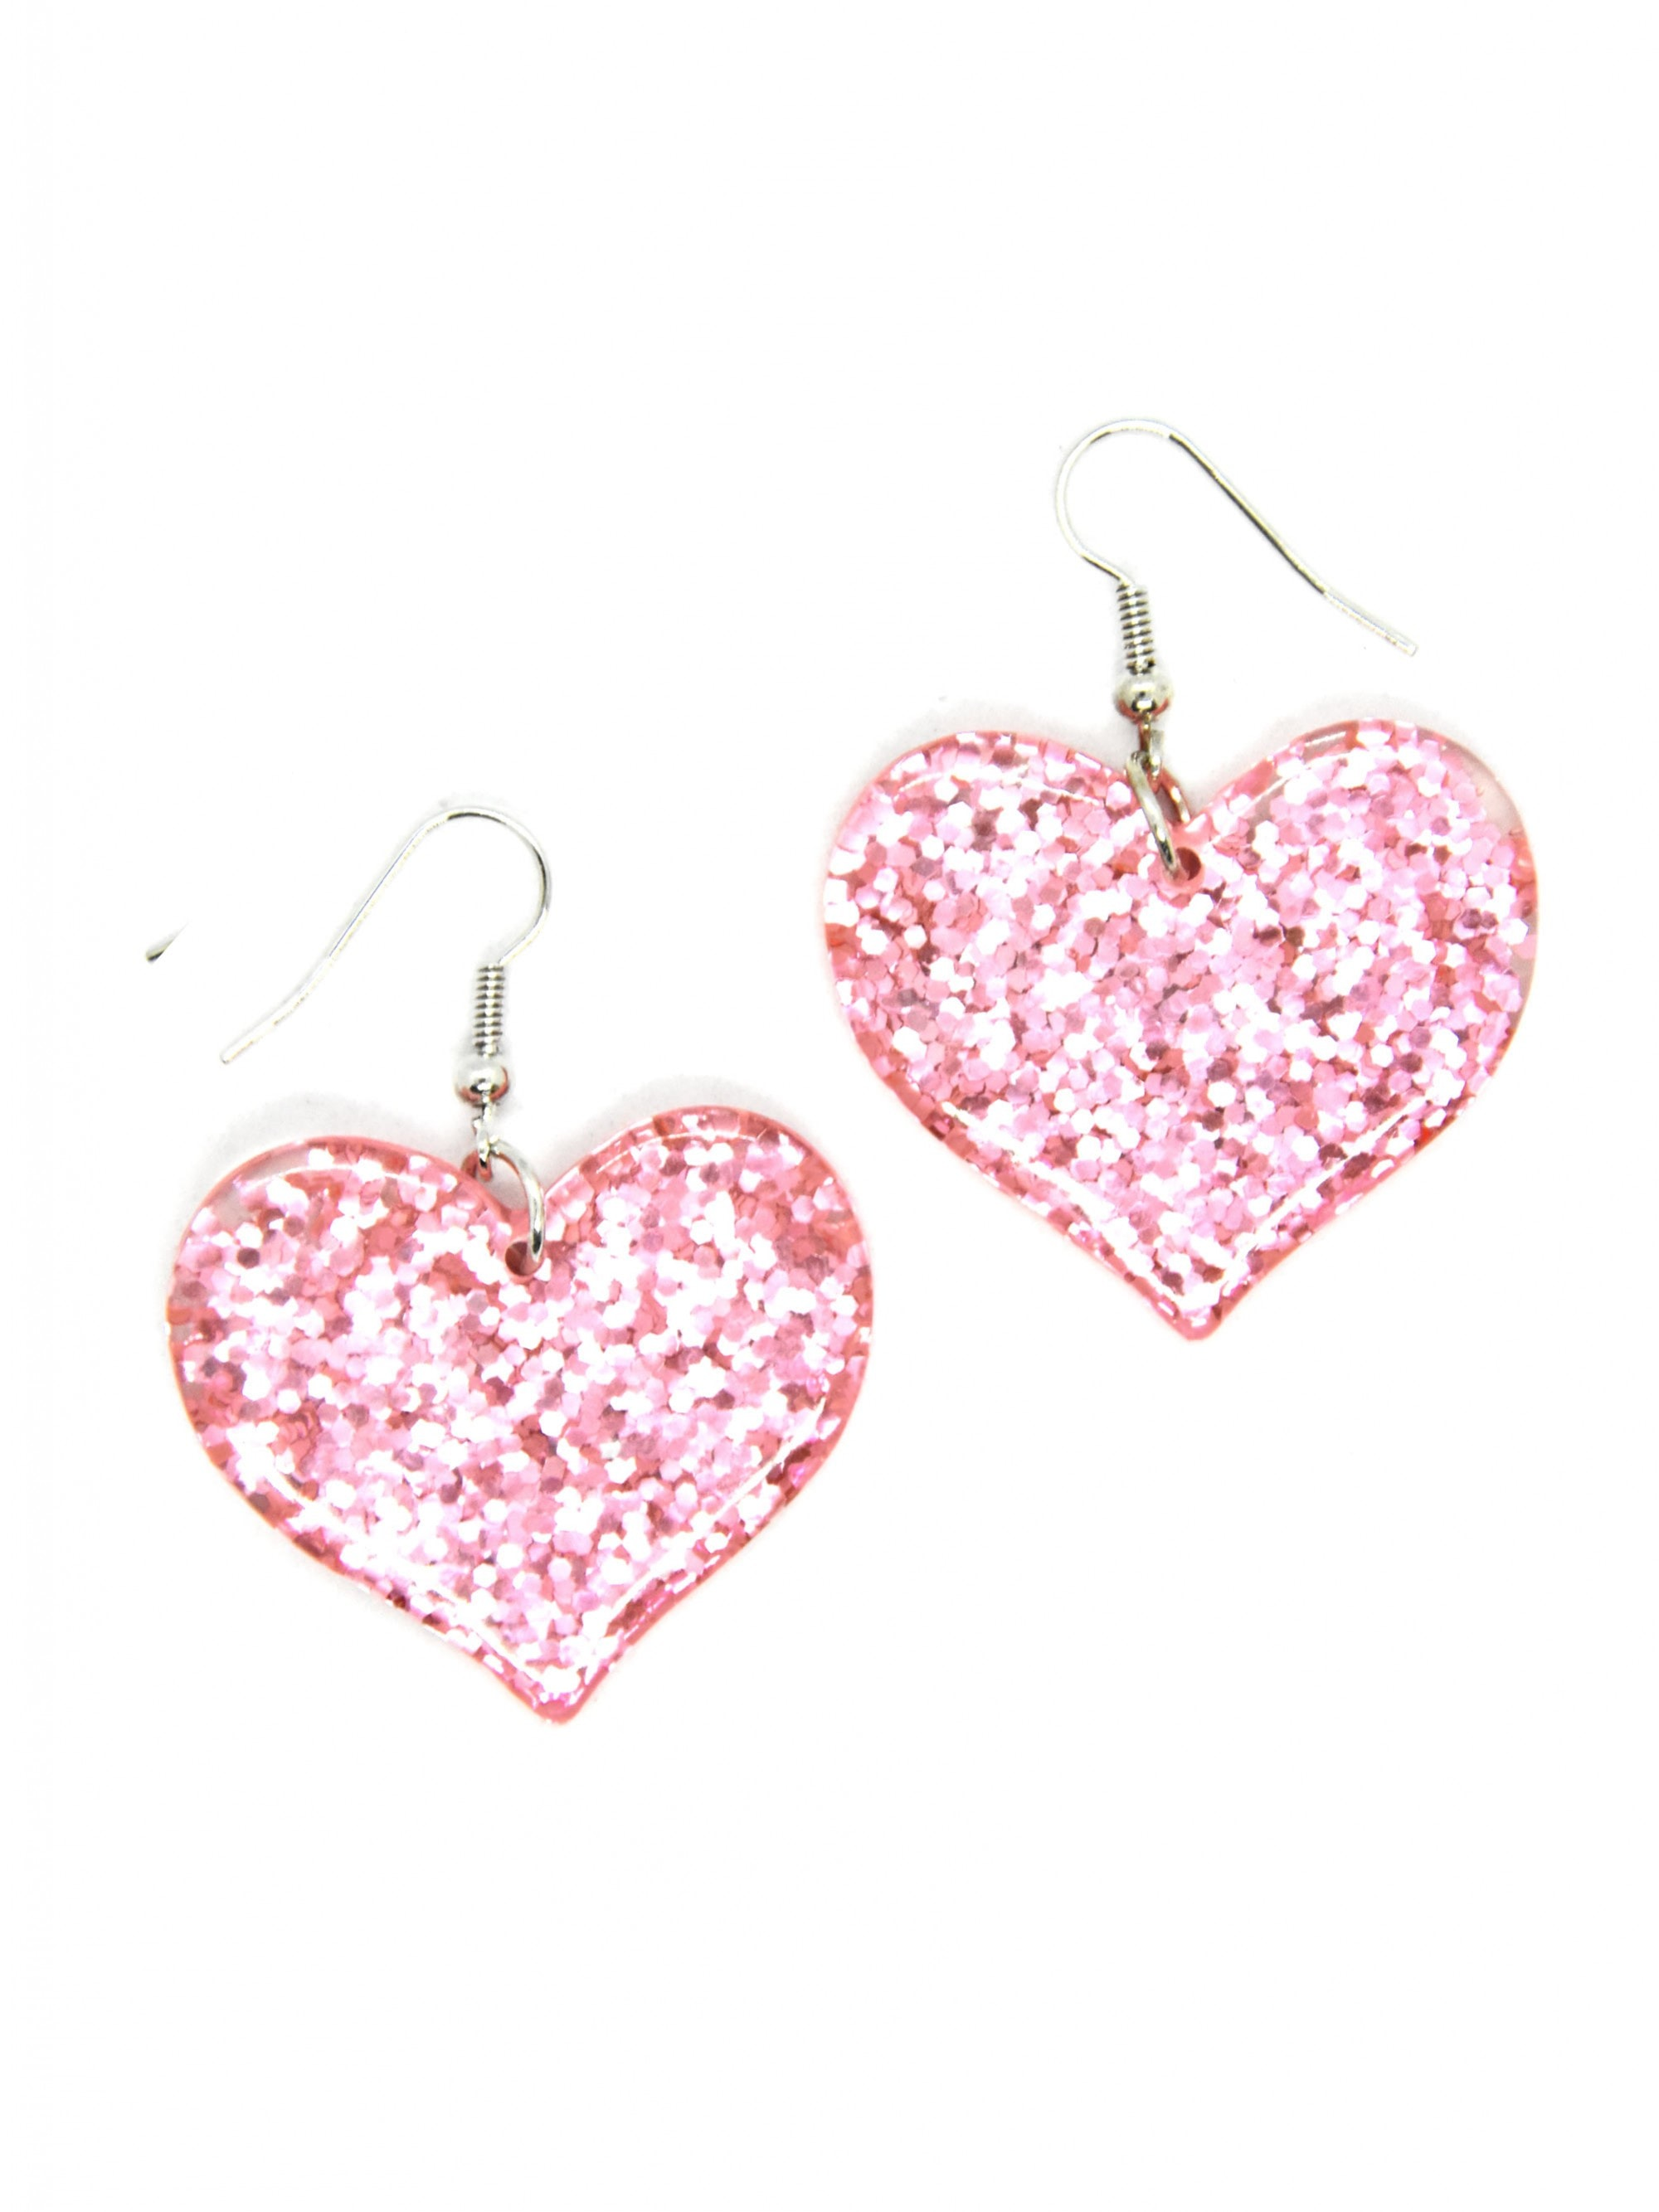 best sellers for women pink earrings dangle heart earrings pink valentines earrings clay valentines jewelry mothers day gift for friend